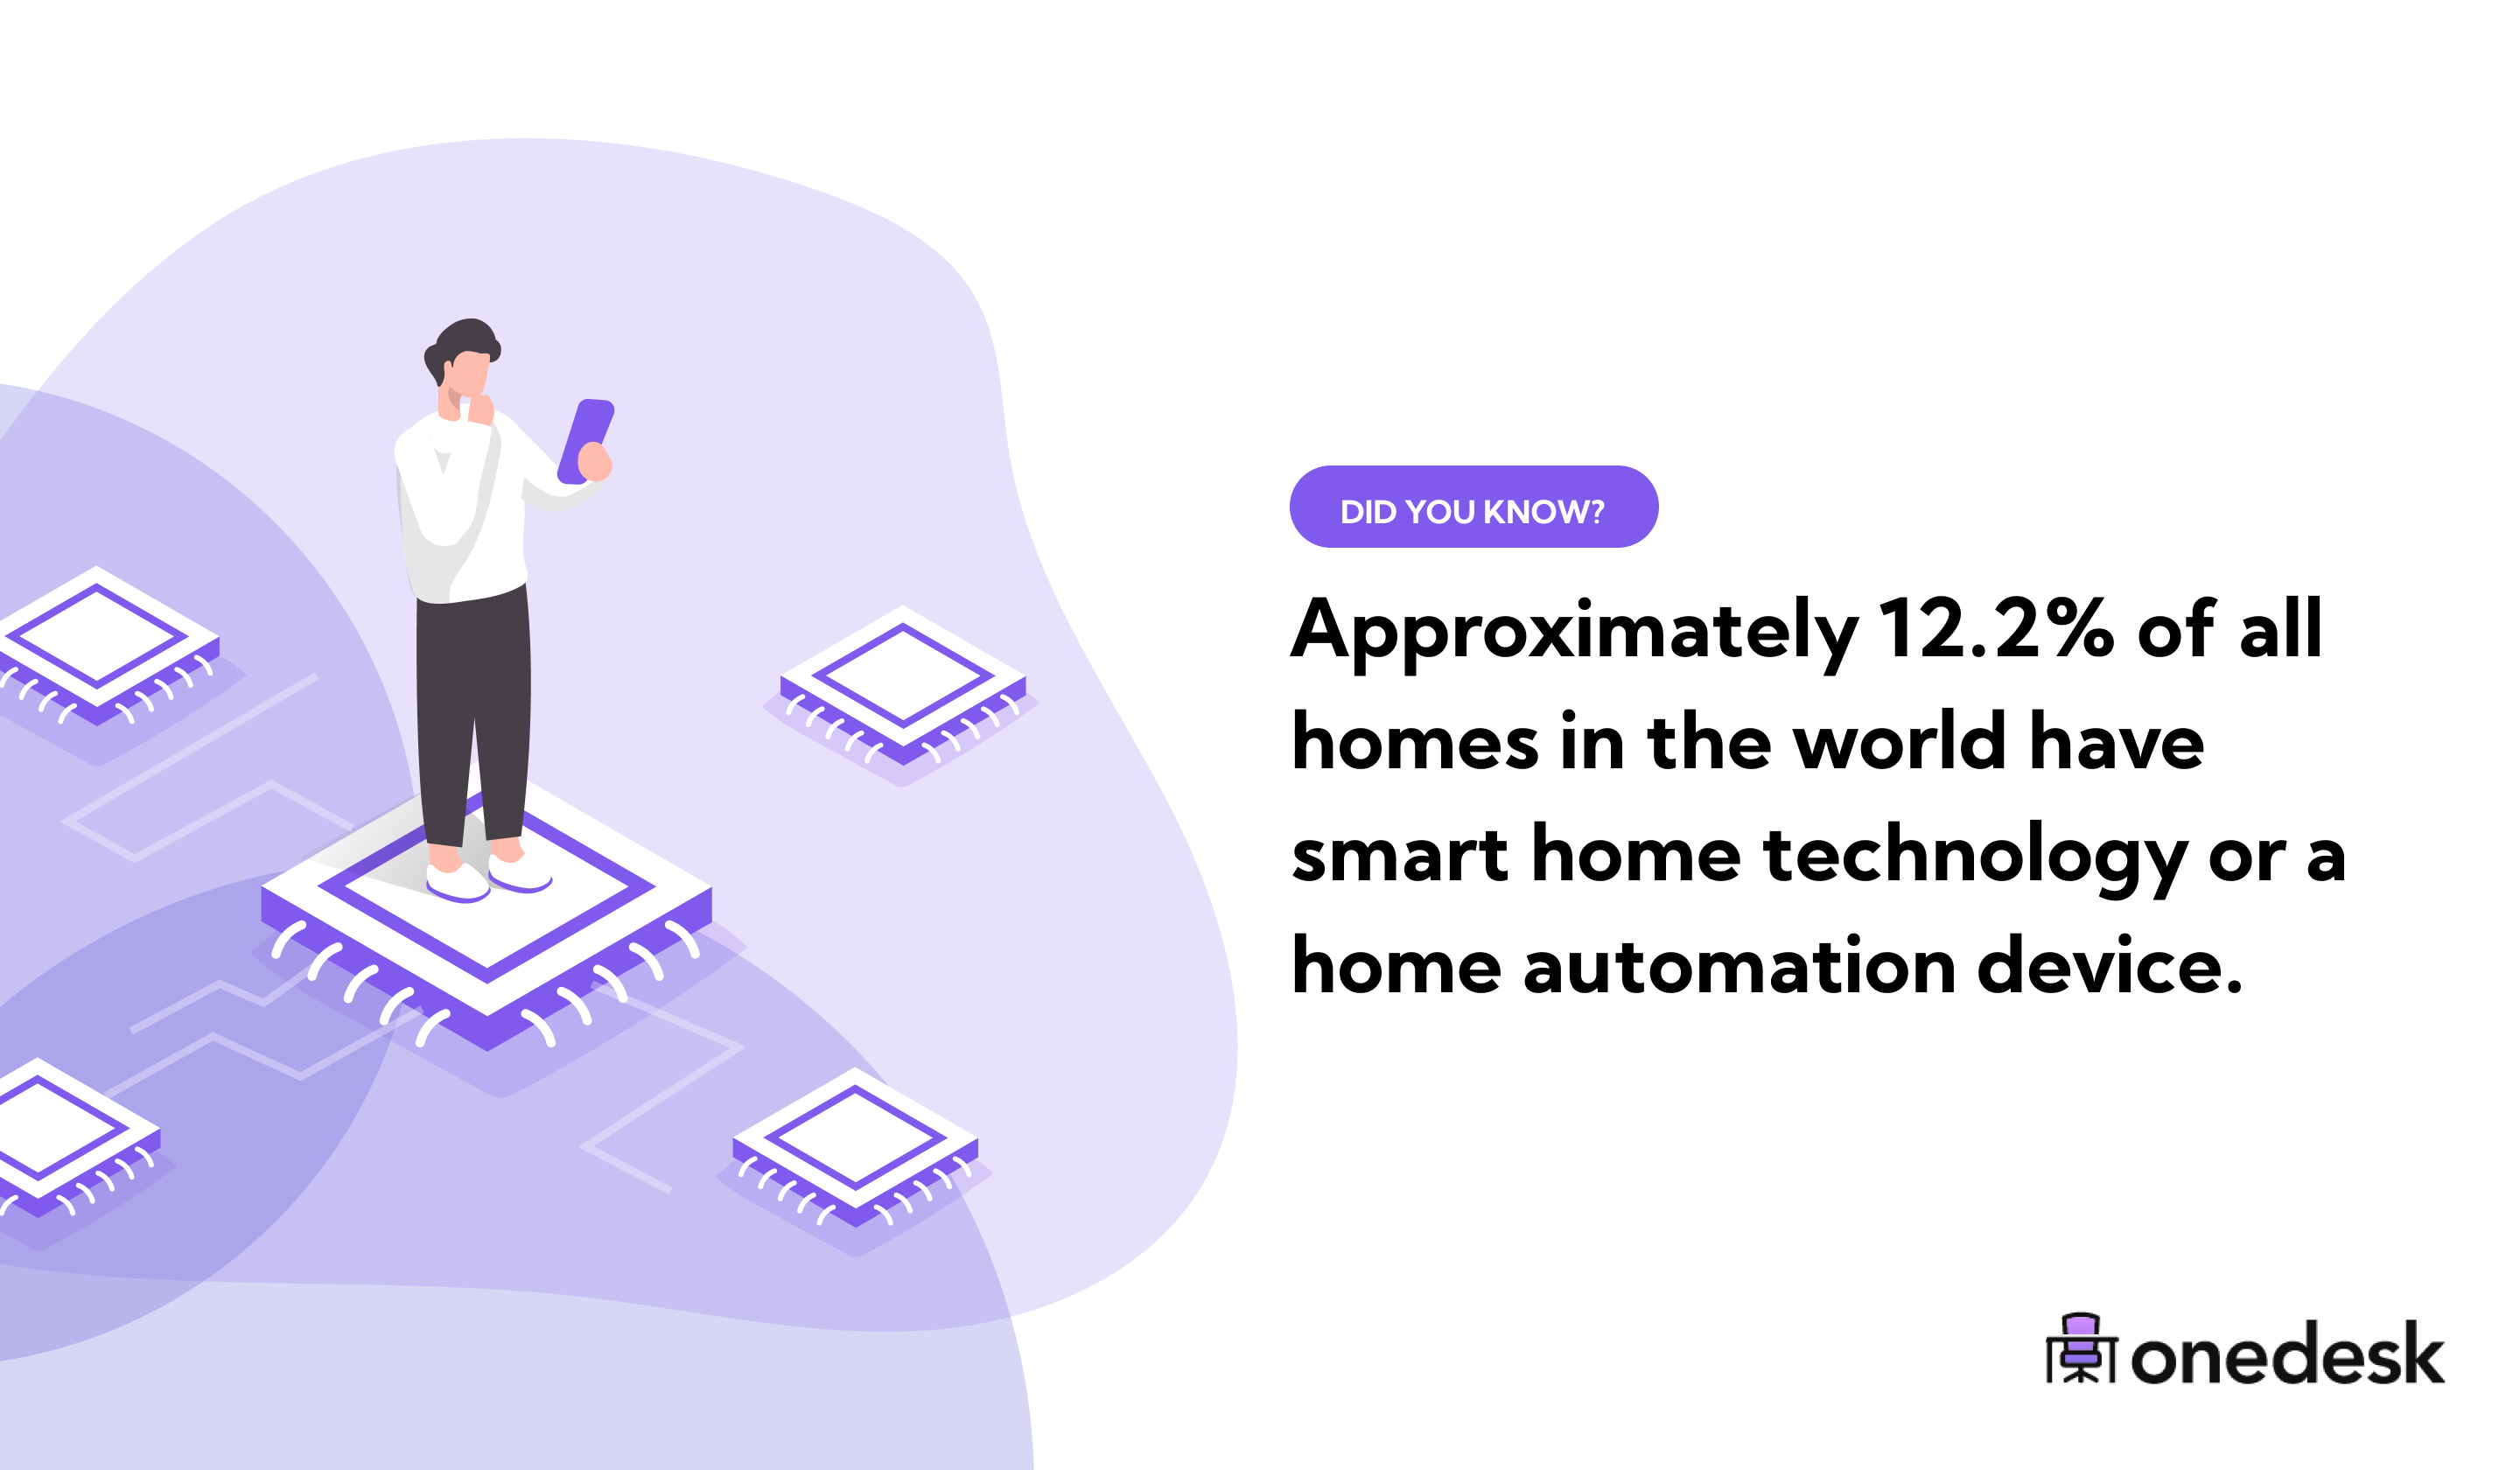 12.2% of homes in the world have smart home technology